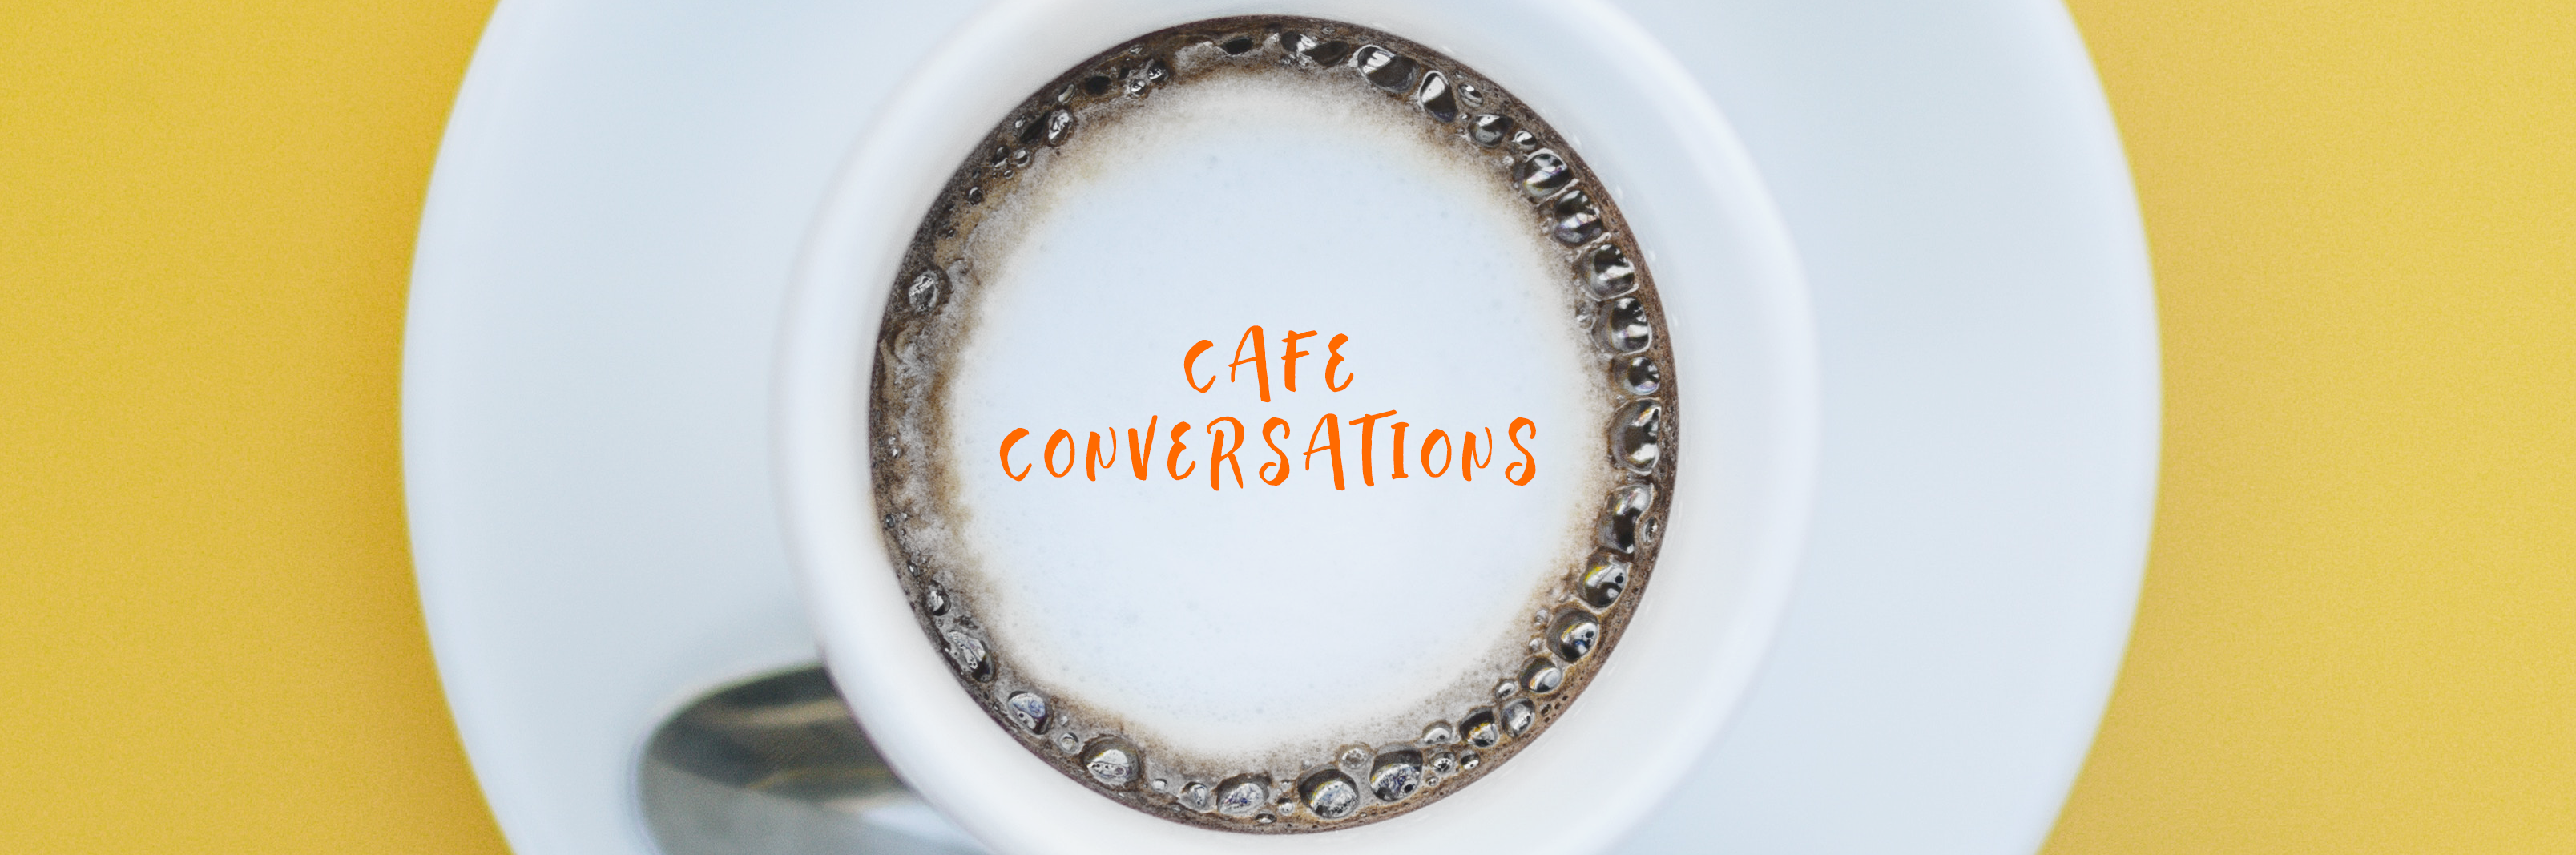 Cafe Conversations